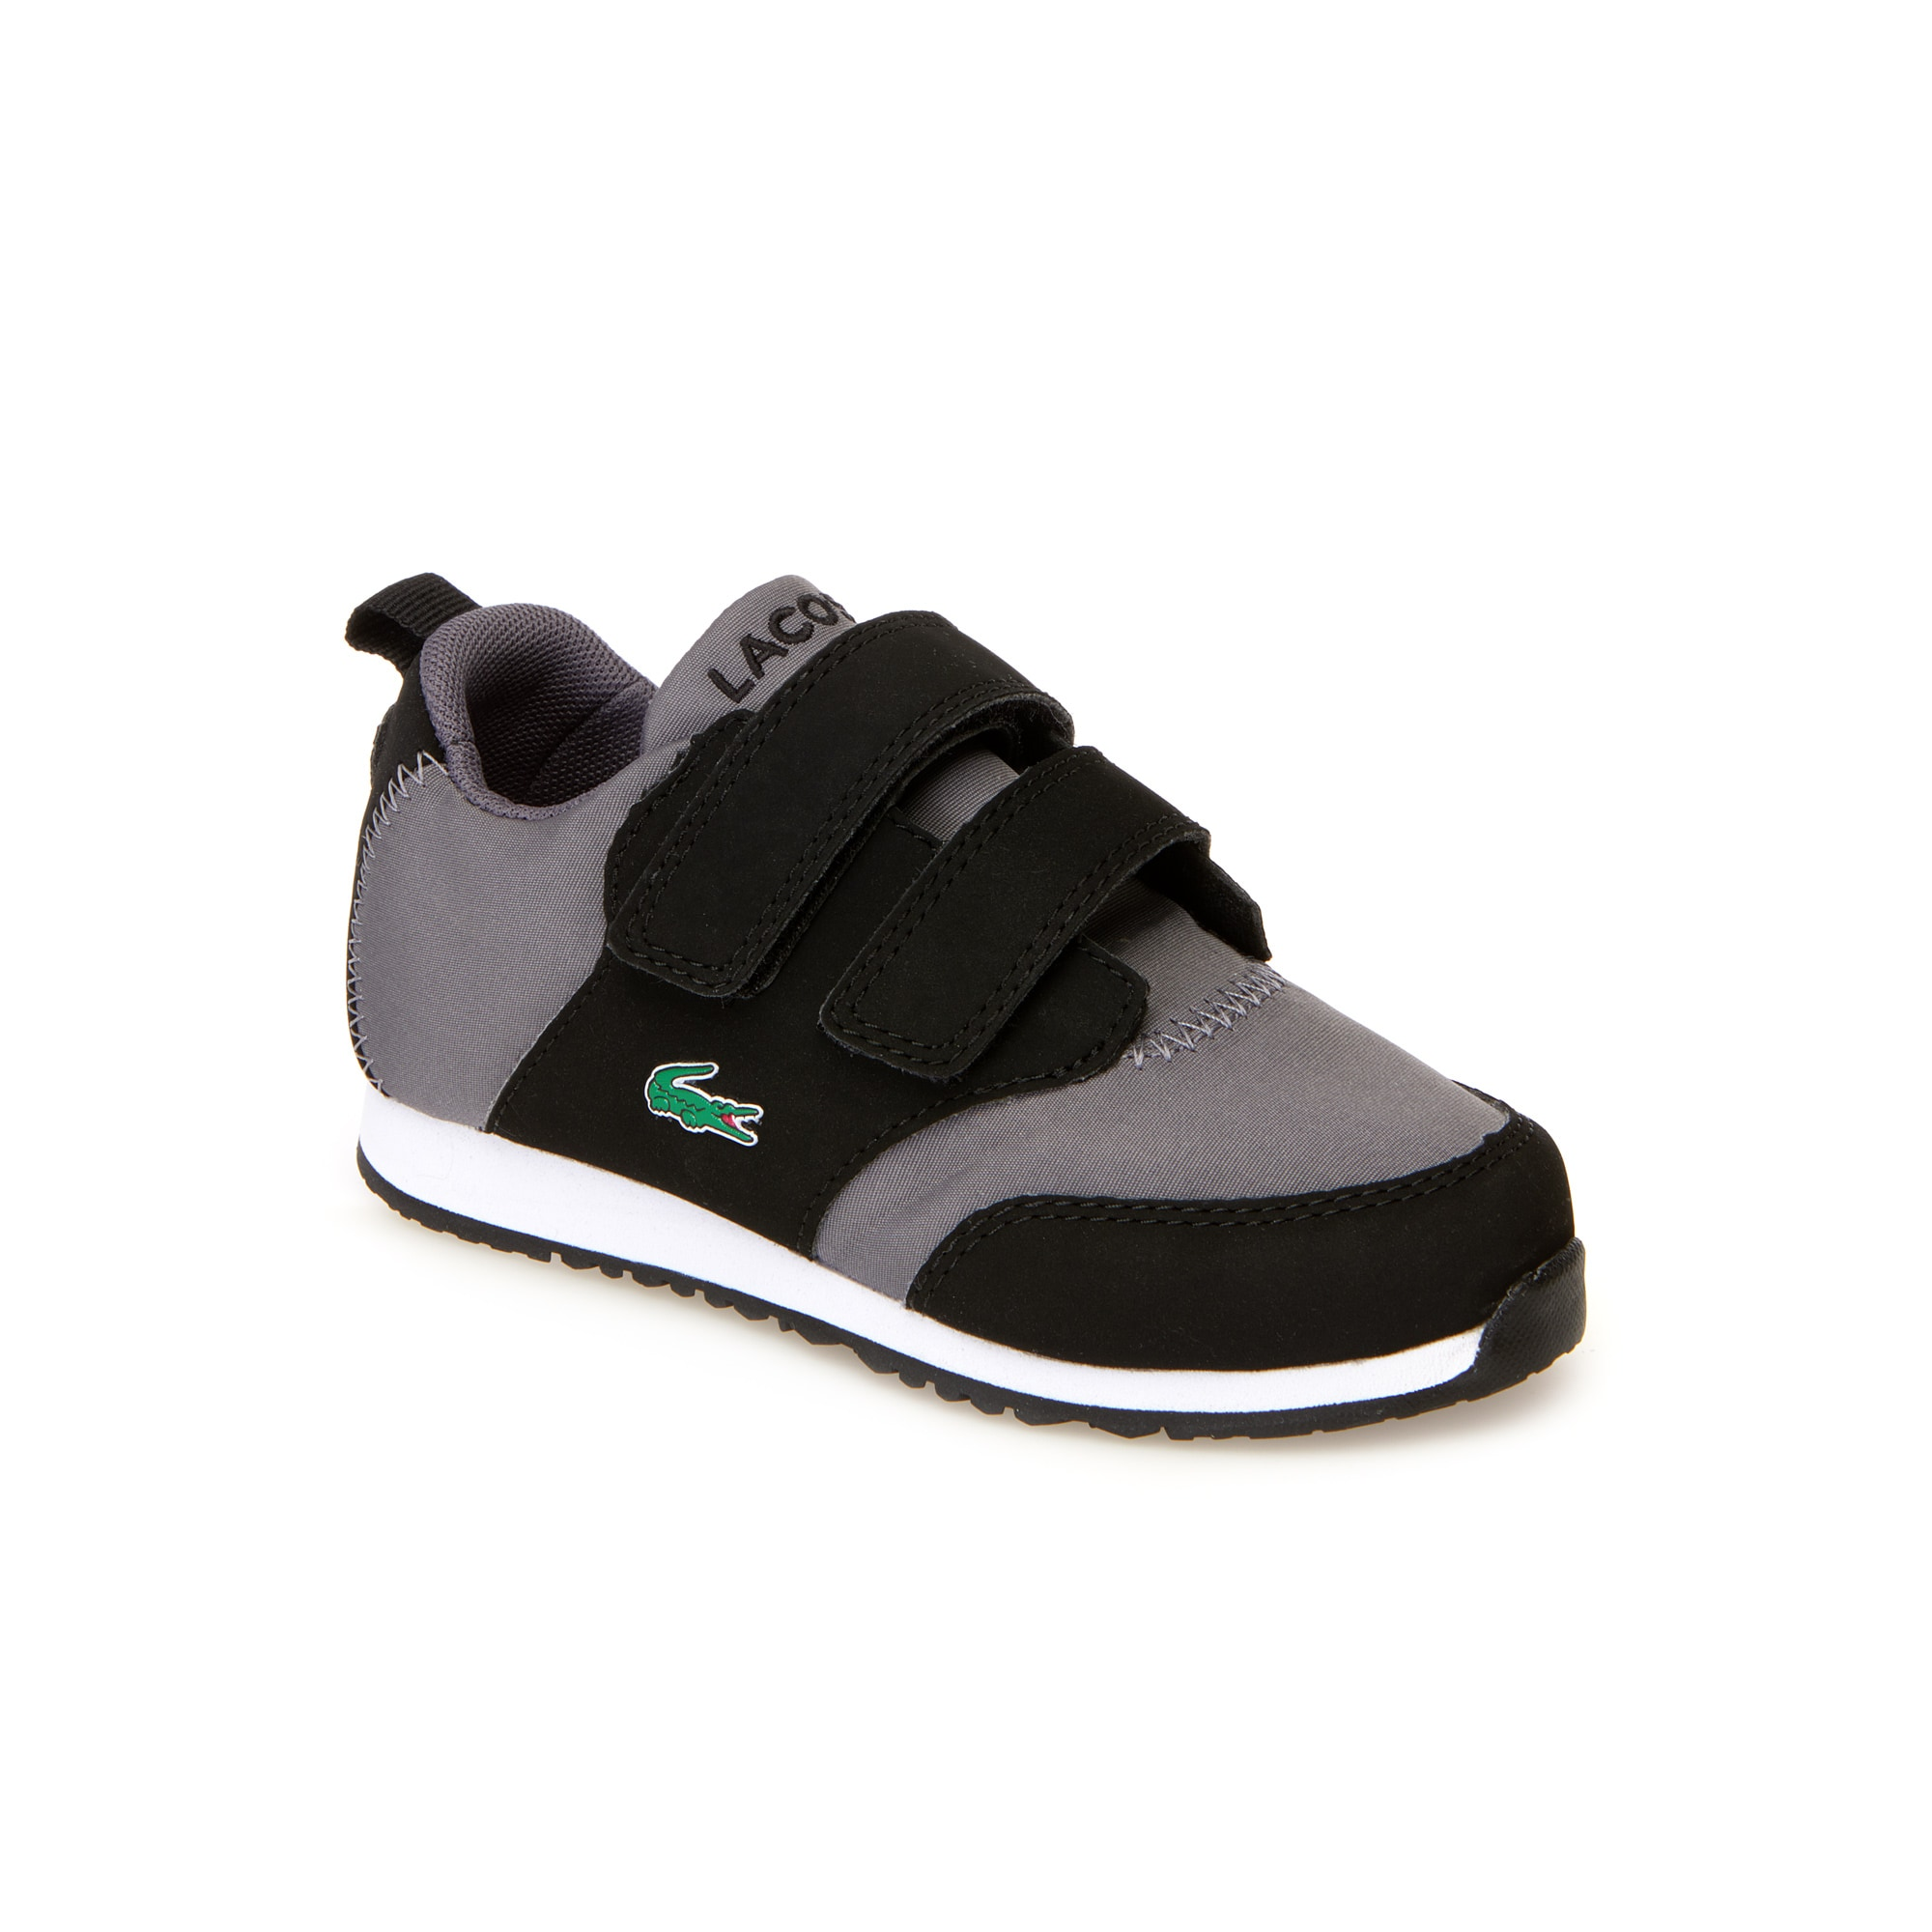 Infants' L.ight Textile and Synthetic Trainers